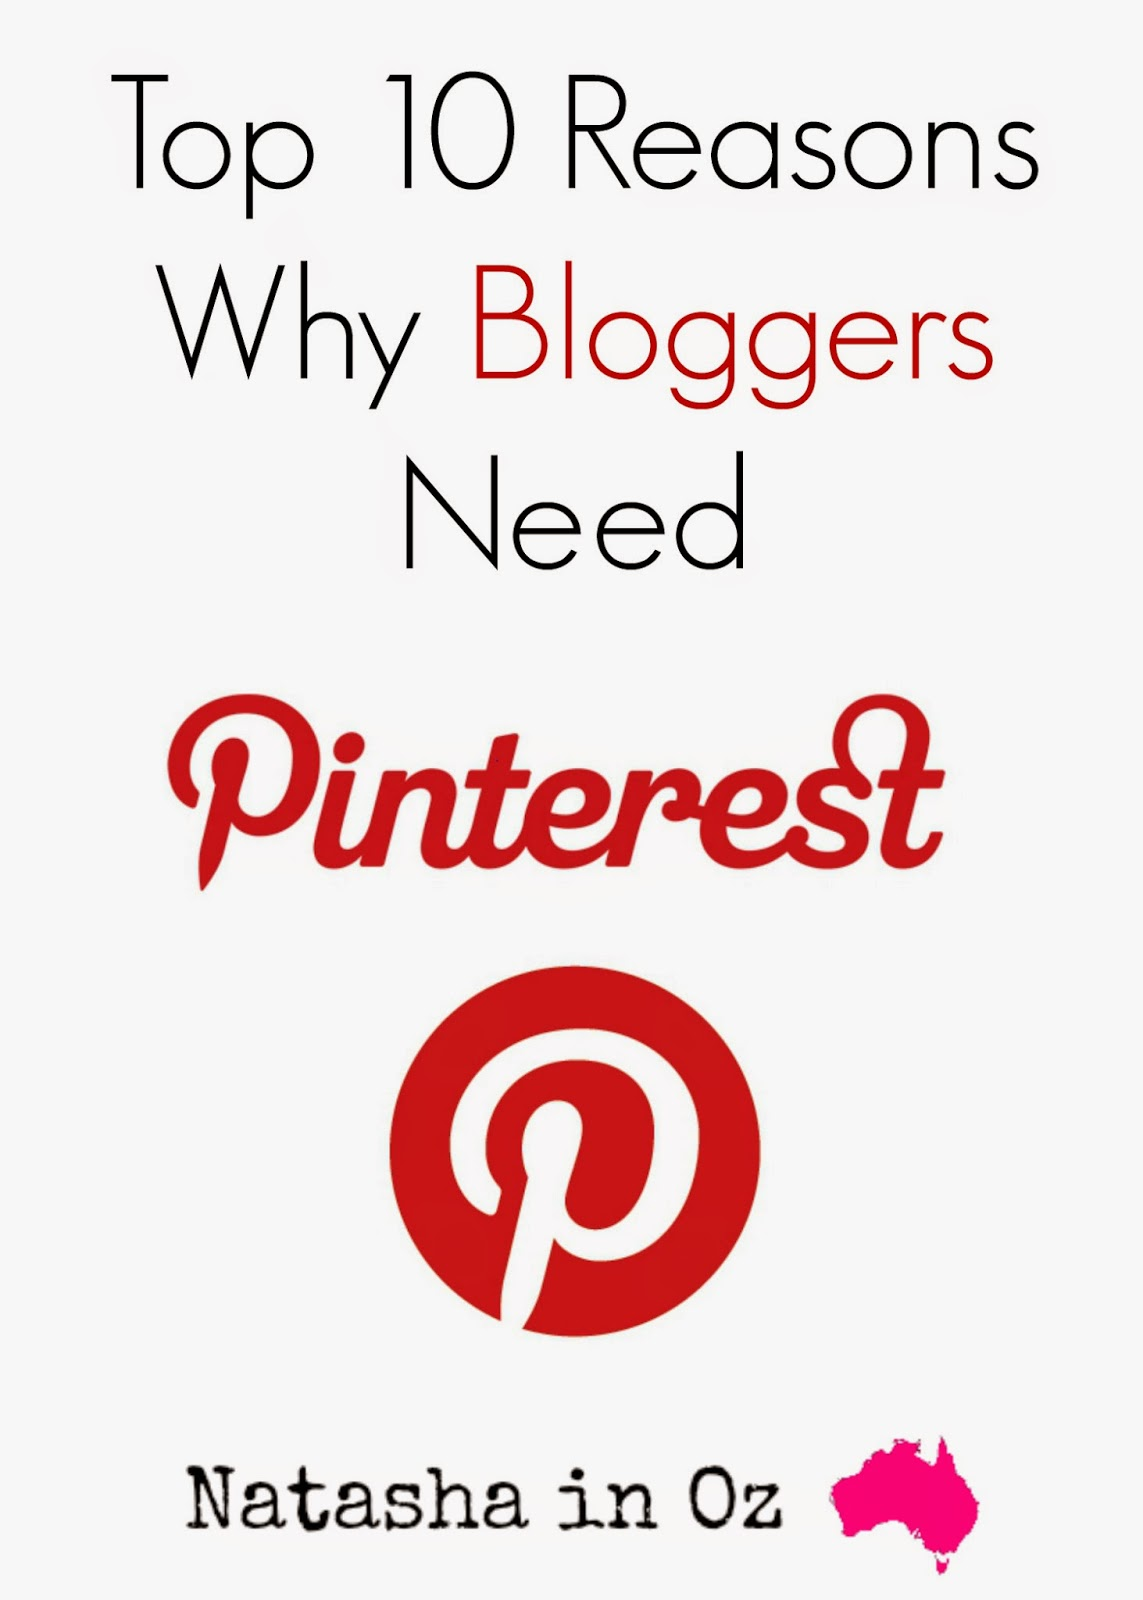 Top 10 Reasons Why Bloggers Need Pinterest via www.natashainoz.com